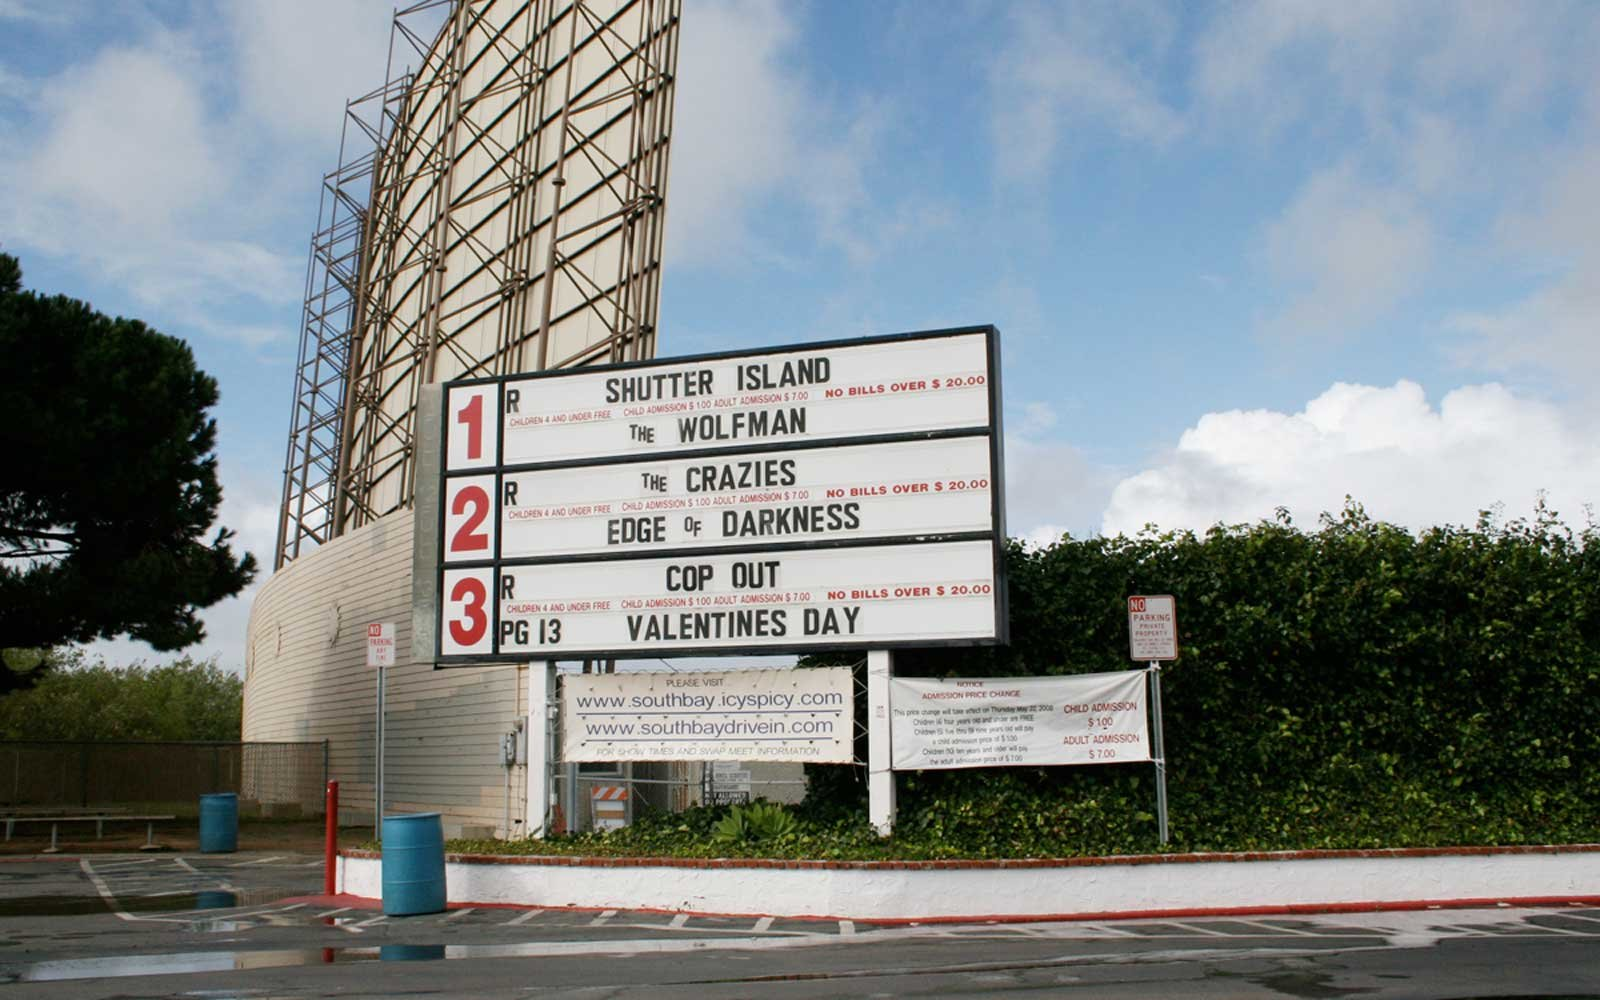 South Bay Drive-In Imperial Beach California